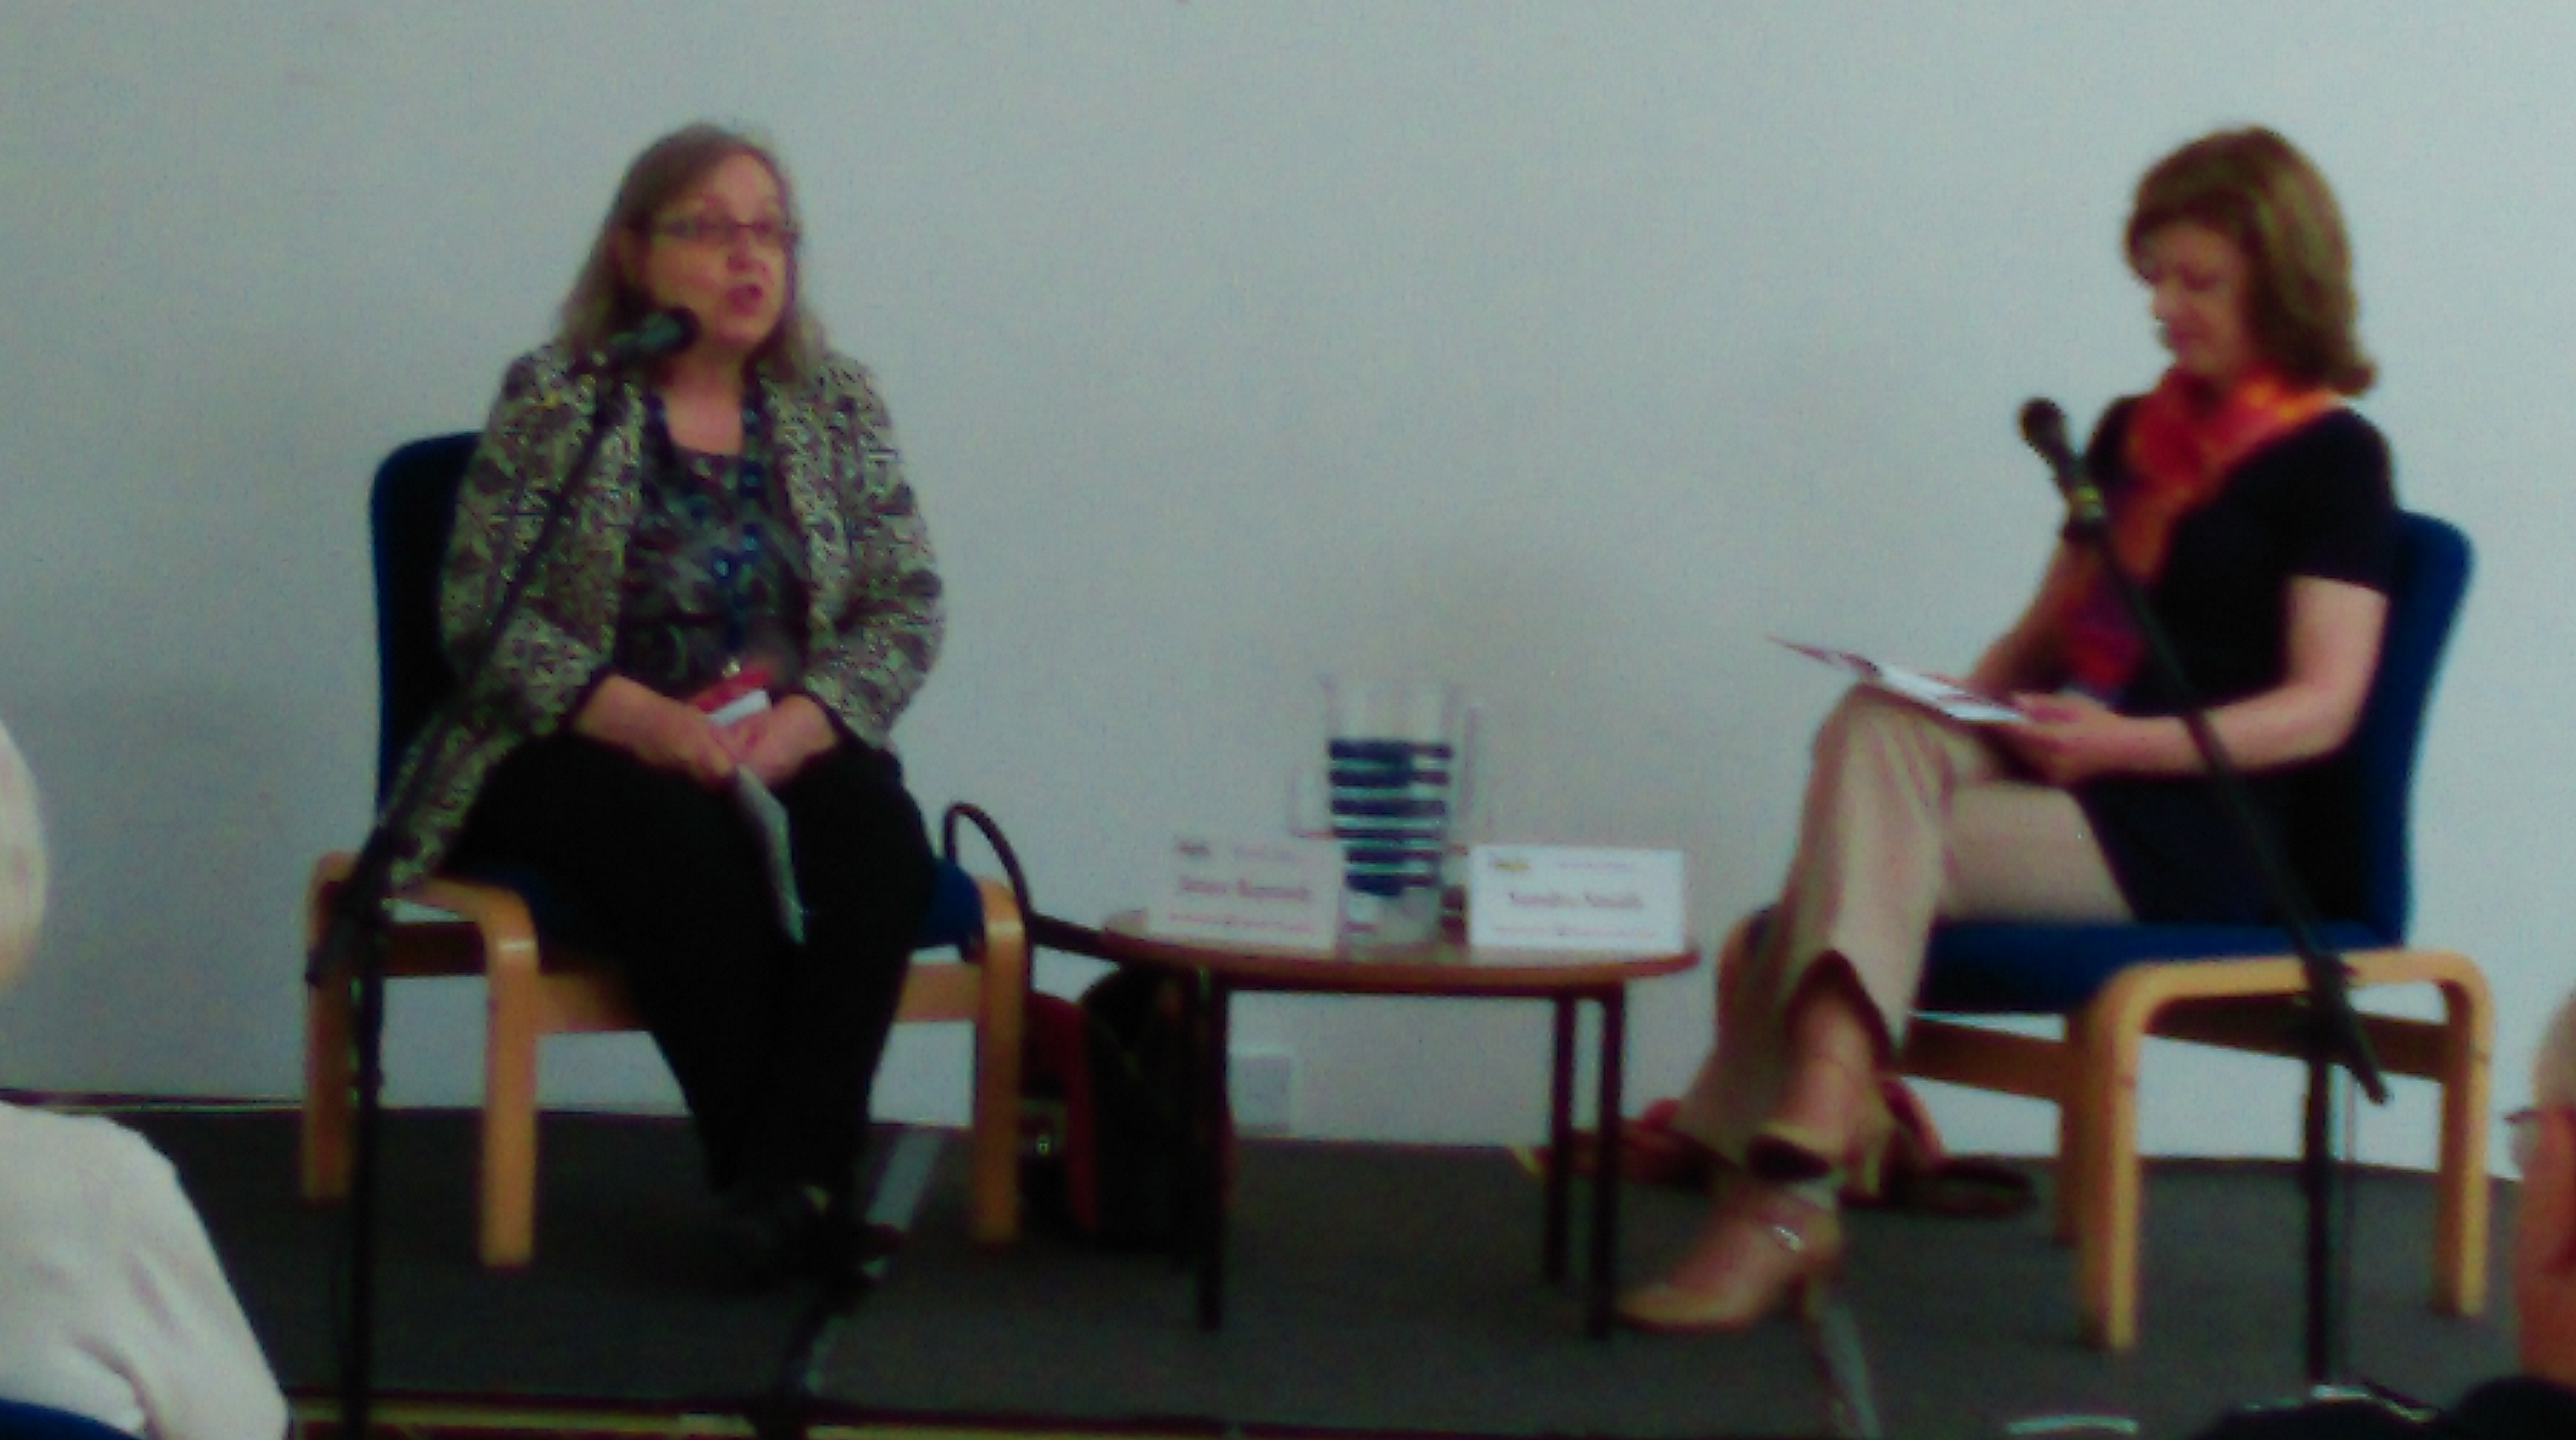 The Day Ended With An Absorbing Chat Between Emma Darwin And Liz Harris On Writing Outside Box In Historical Fiction